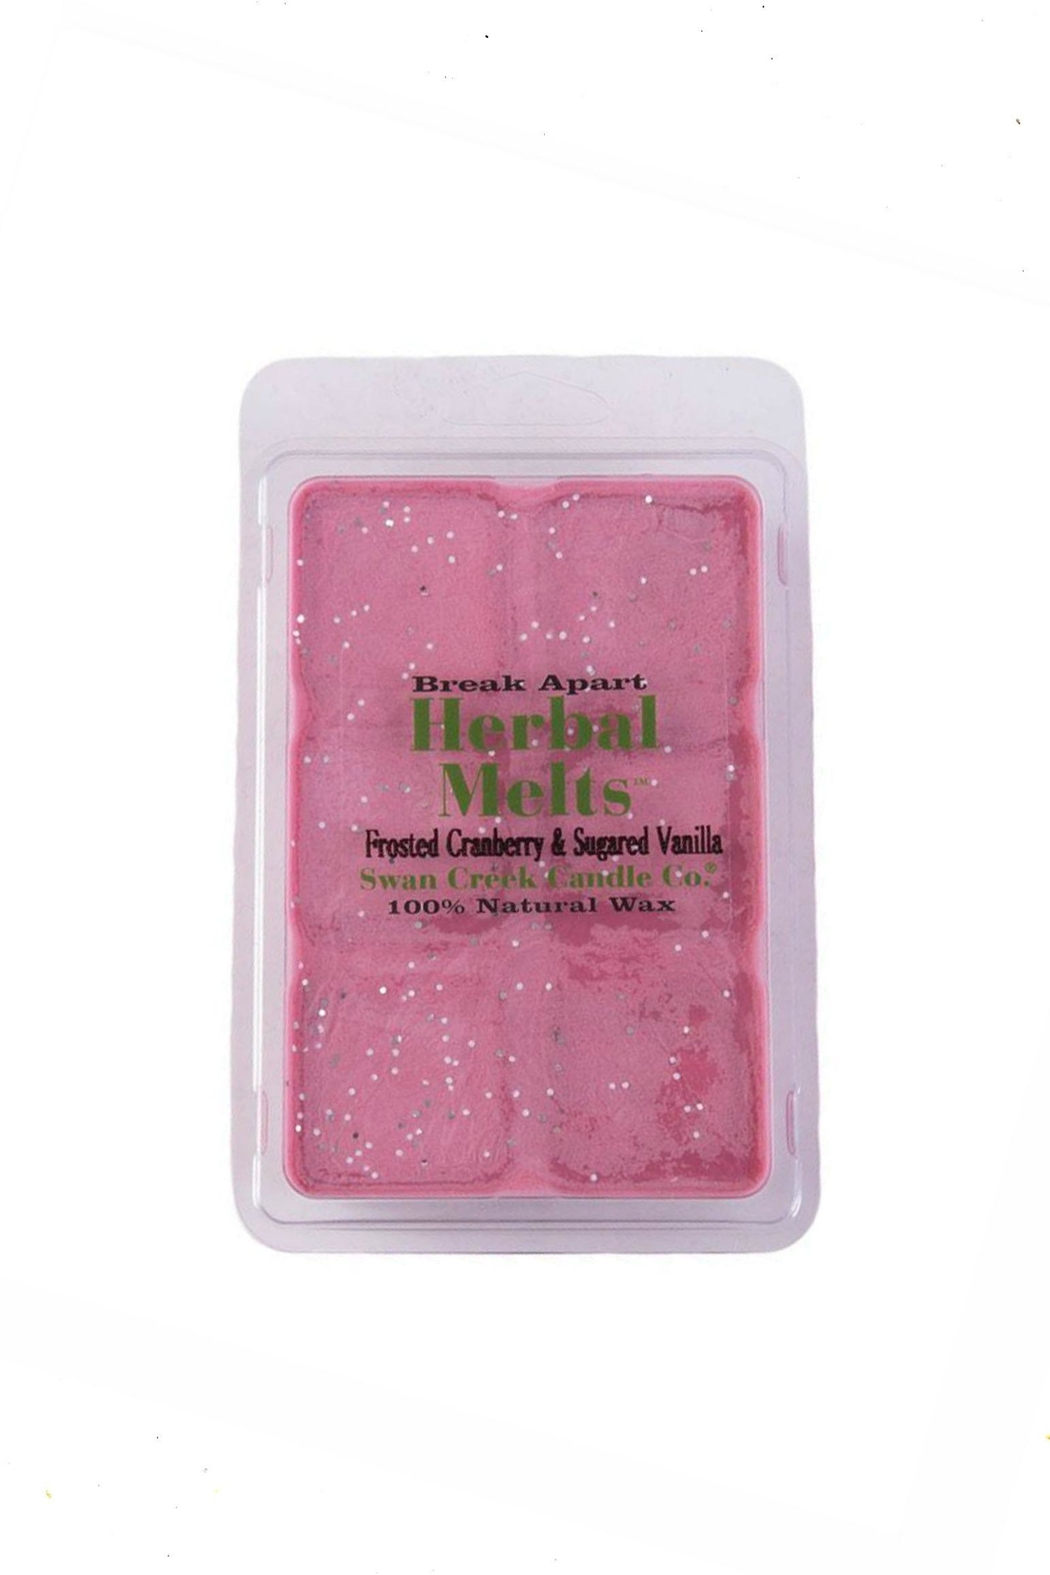 Swan Creek Candle Co. Frosted-Cranberry&Sugared-Vanilla Melts - Main Image